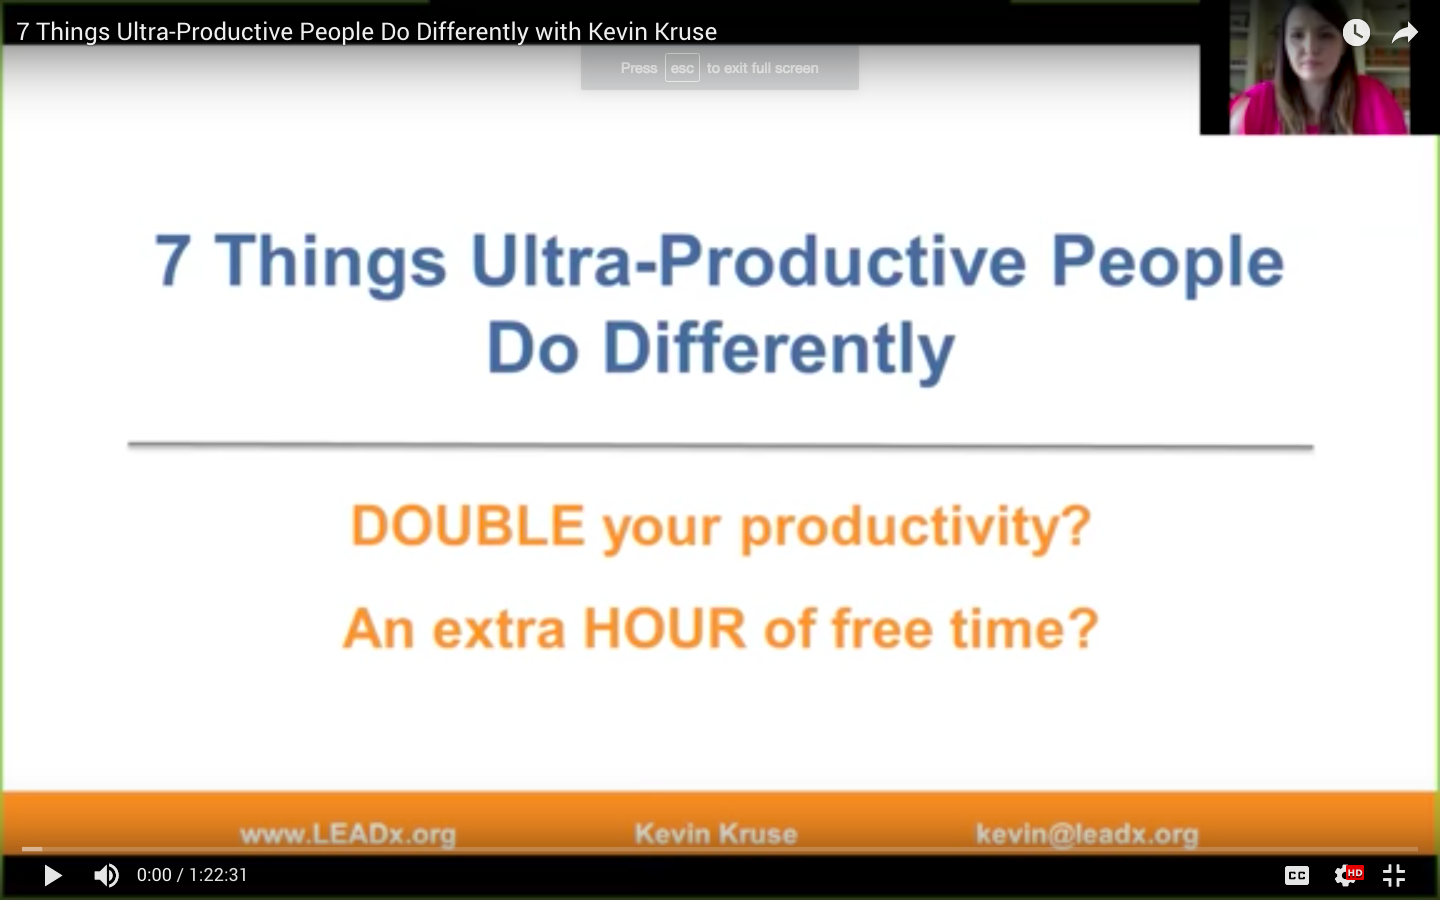 WEBINAR: Secrets to Ultra-Productivity